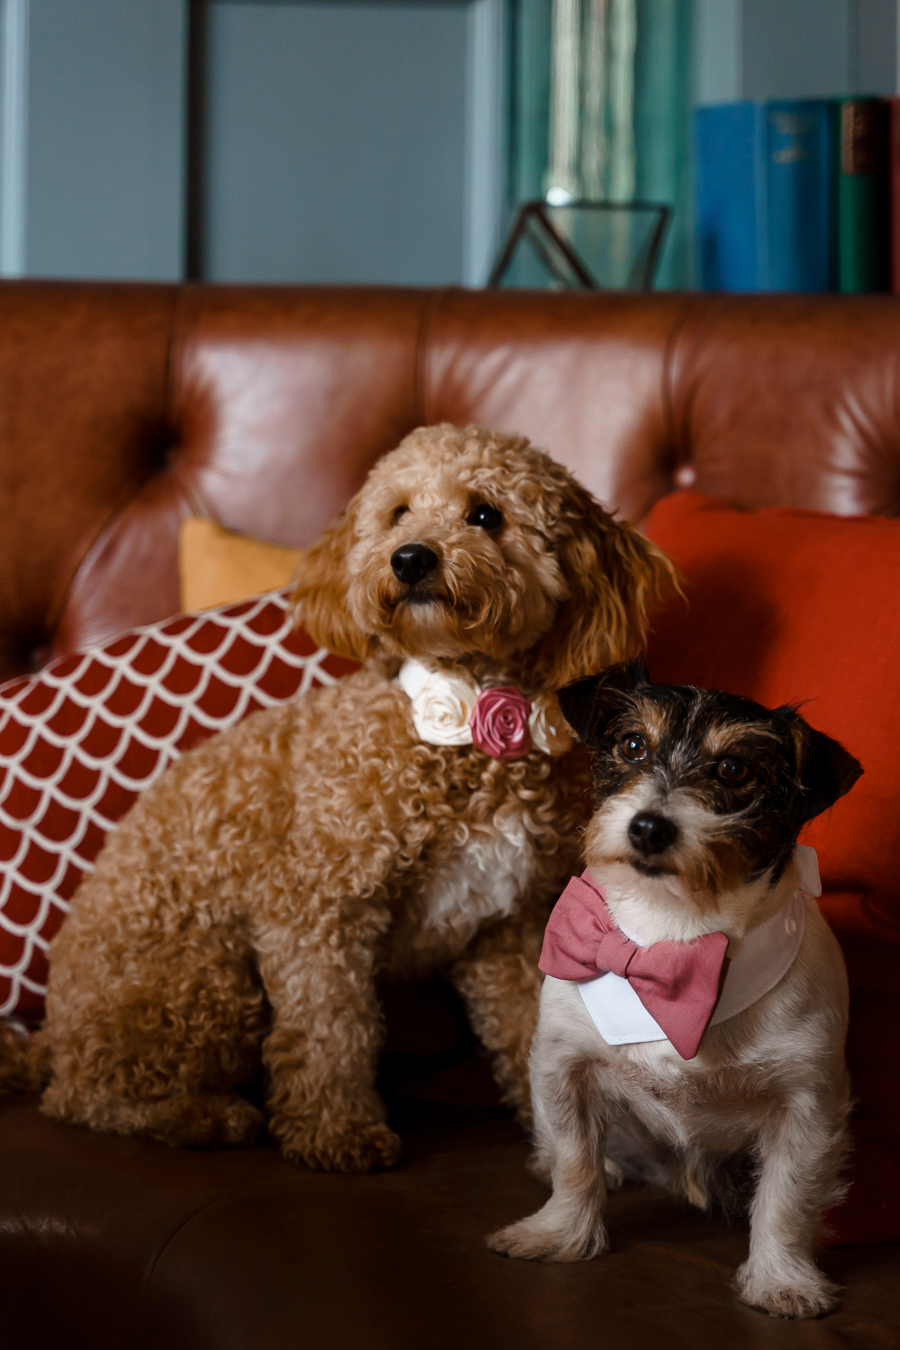 A loved-up Winchester city elopement - with adorable dogs! Photographer credit Katherine and her Camera (13)